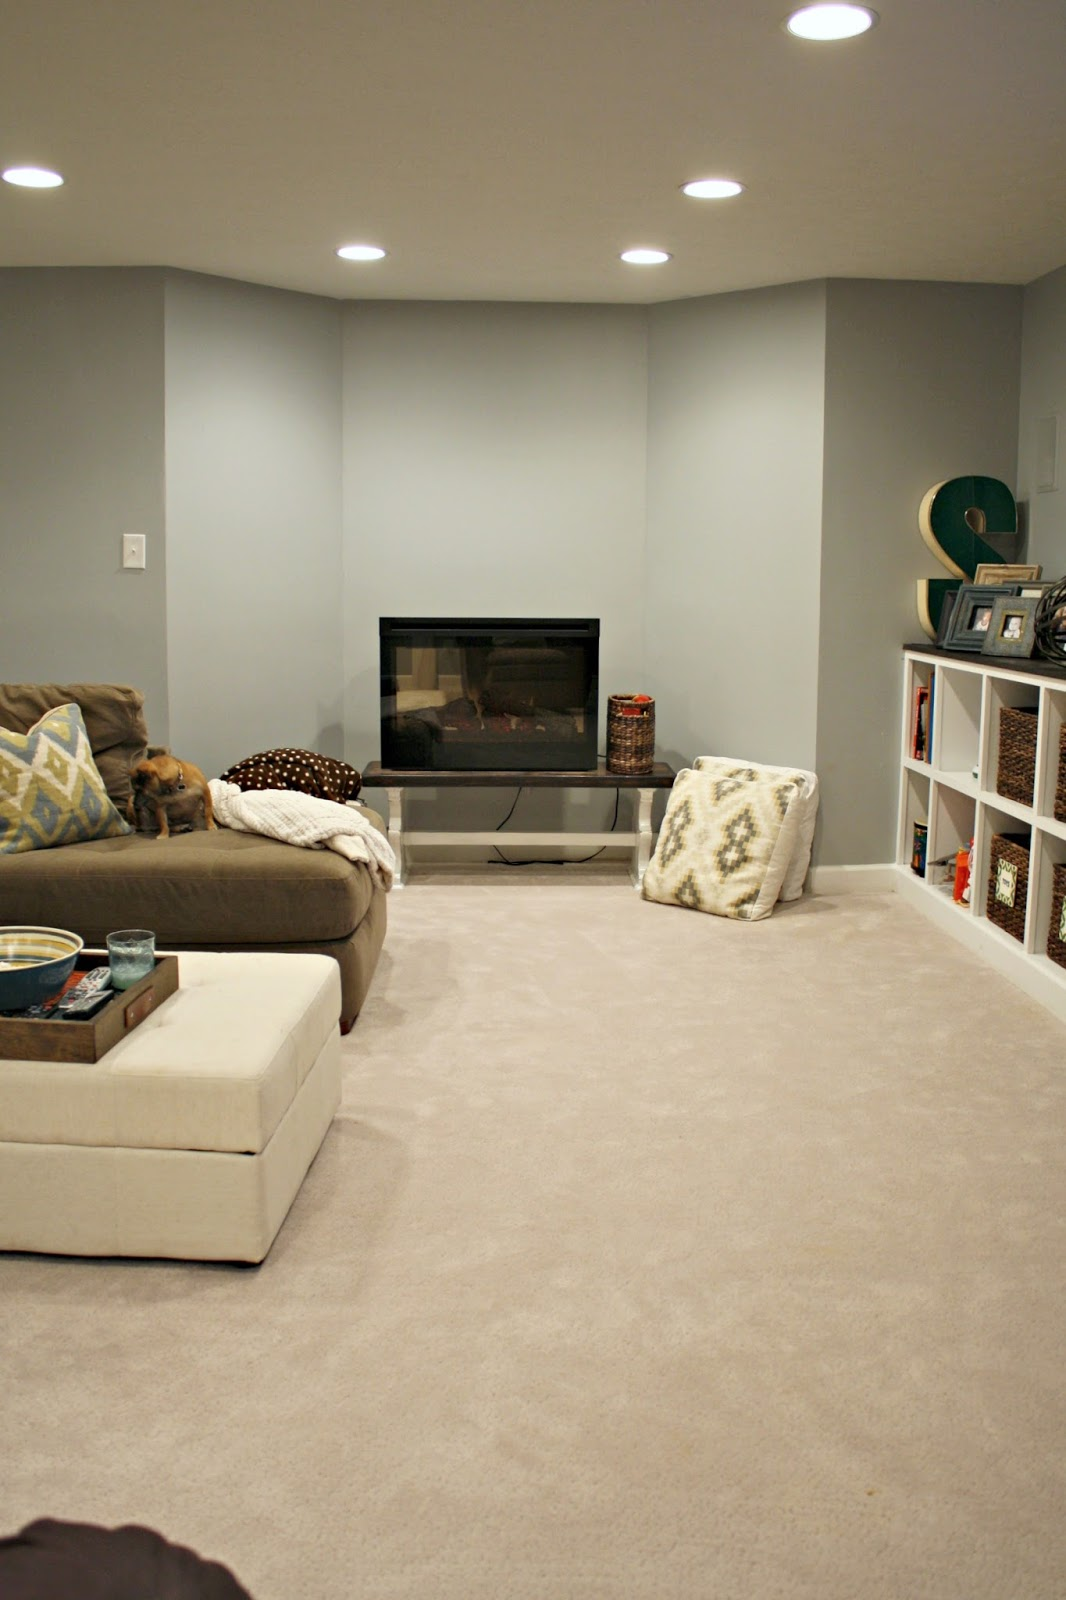 The Perfect Basement Flooring And Other Fun Changes! From. Designer Kitchens London. Interior Design Ideas For Small Kitchen. Center Island Designs For Kitchens. Kitchen Design And Layout Ideas. Kitchen Color Design Ideas. Cabinet Design Kitchen. Open Concept Kitchen Design Ideas. Home Interior Design For Kitchen